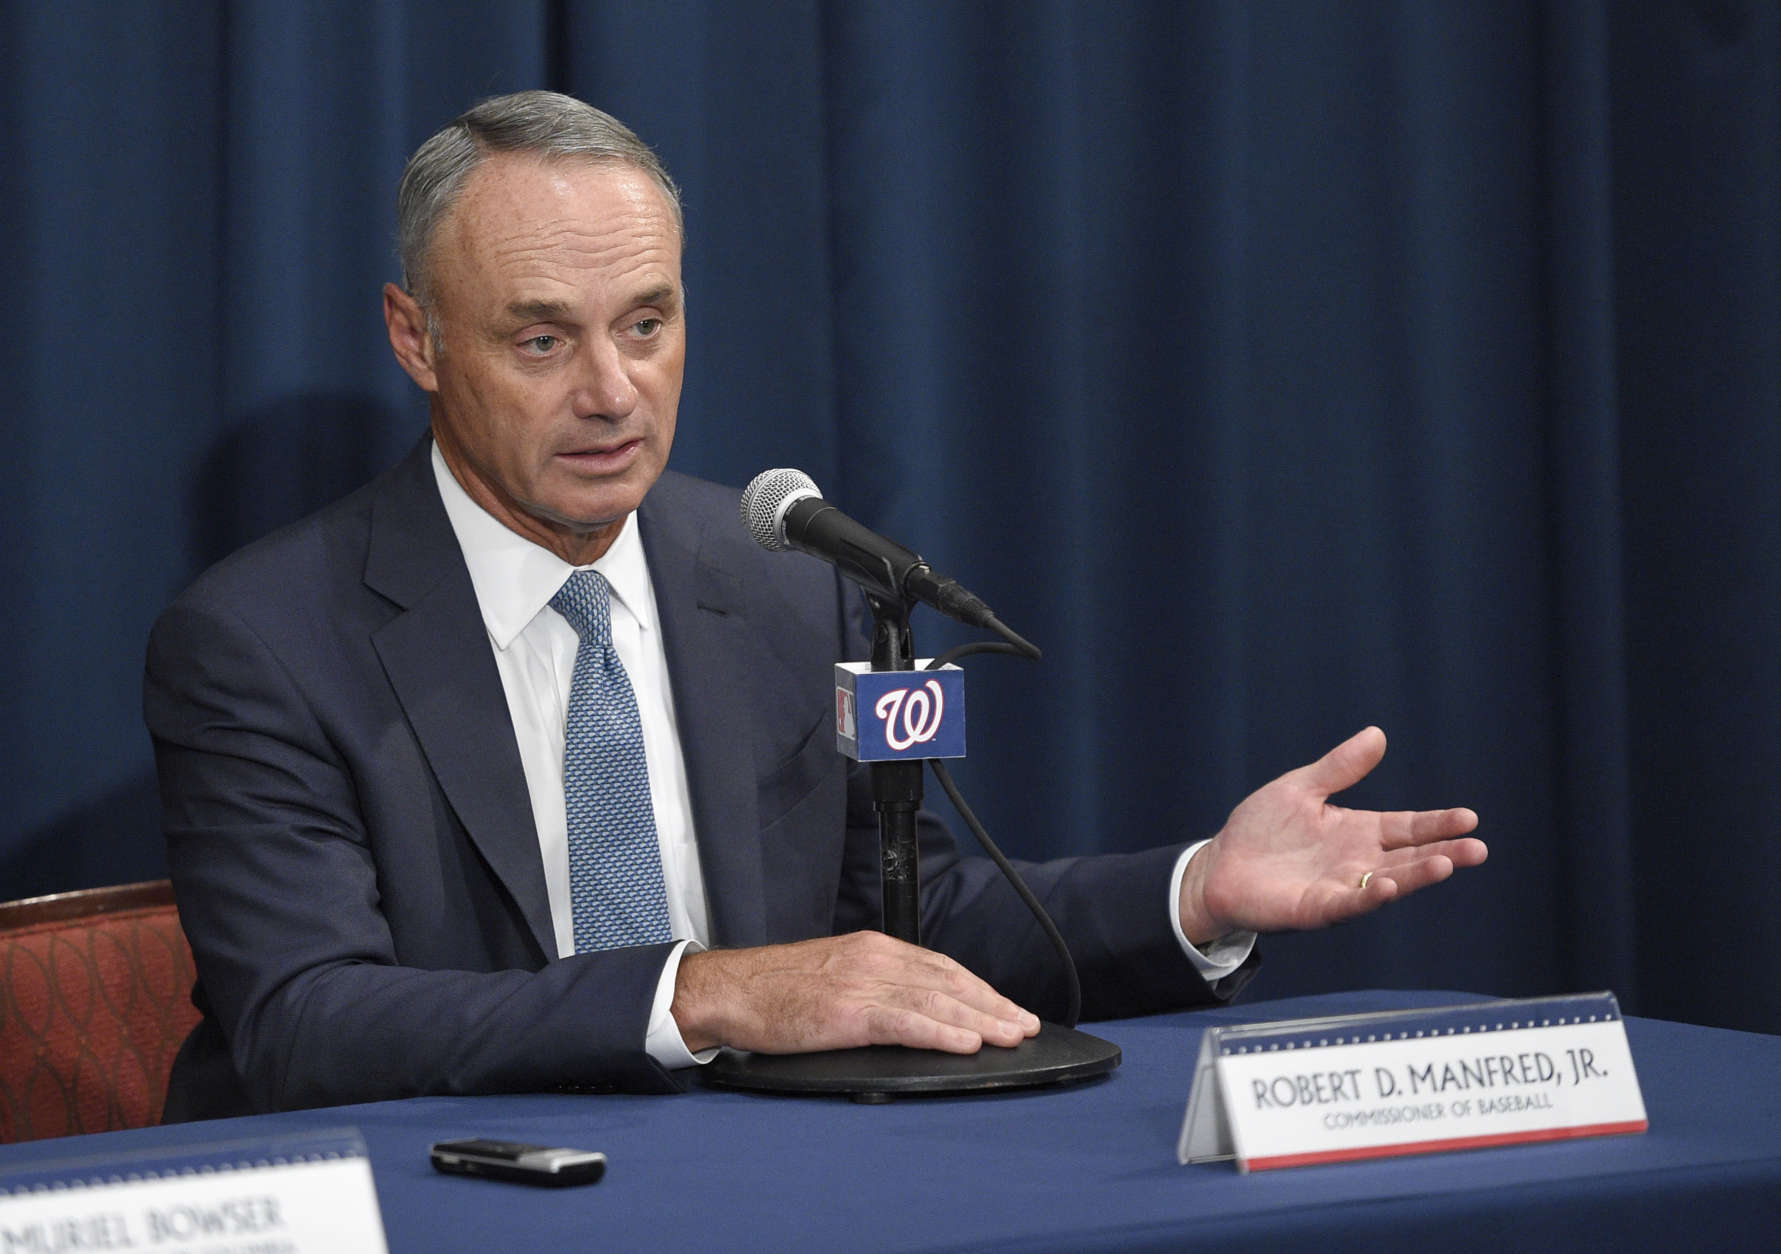 Baseball Commissioner Rob Manfred speaks during a press conference to unveil the 2018 MLB All-Star Game logo, Wednesday, July 26, 2017, in Washington. (AP Photo/Nick Wass)